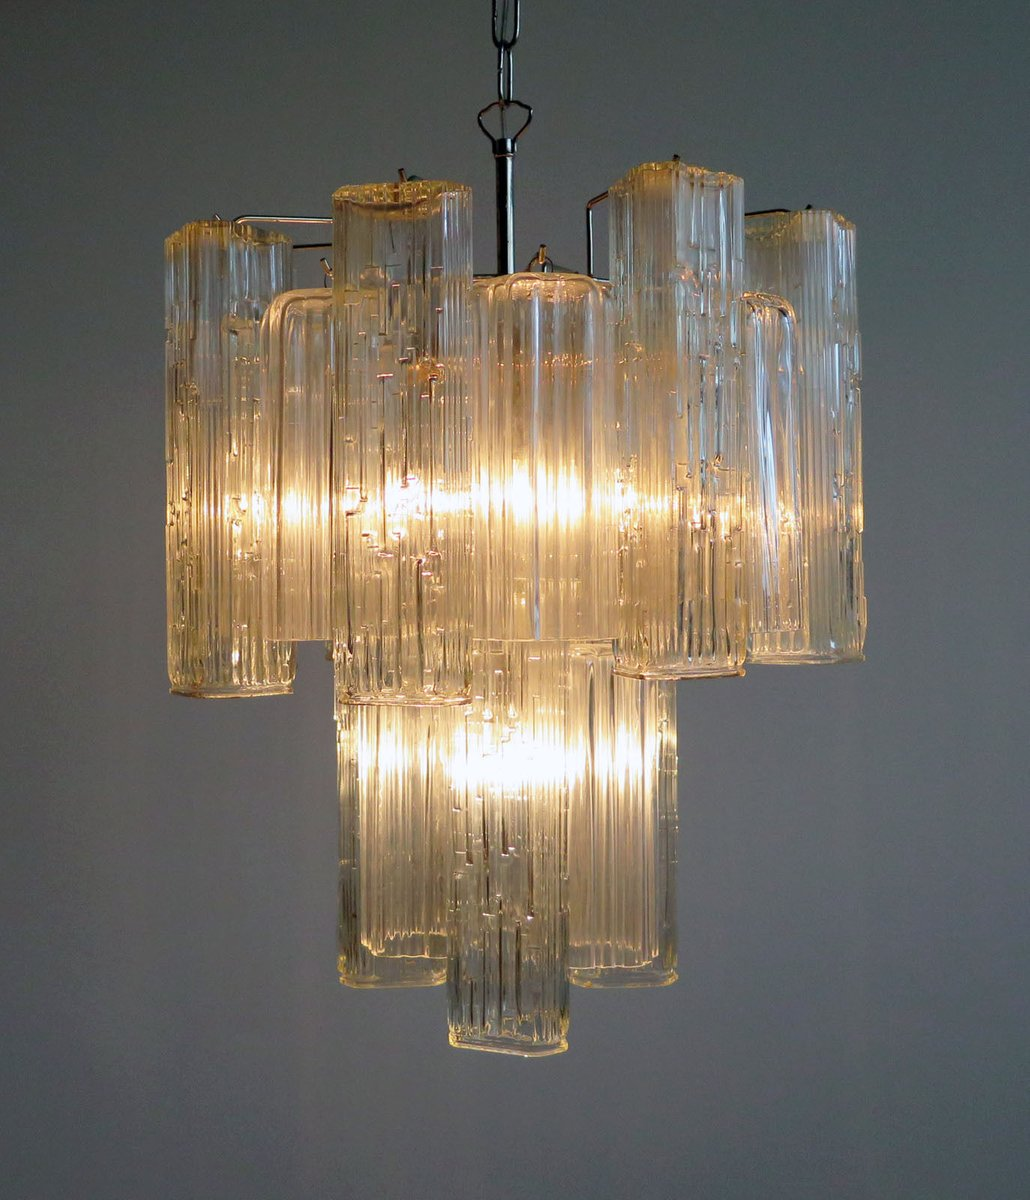 Vintage Murano Glass Chandelier From Murano For Sale At Pamono